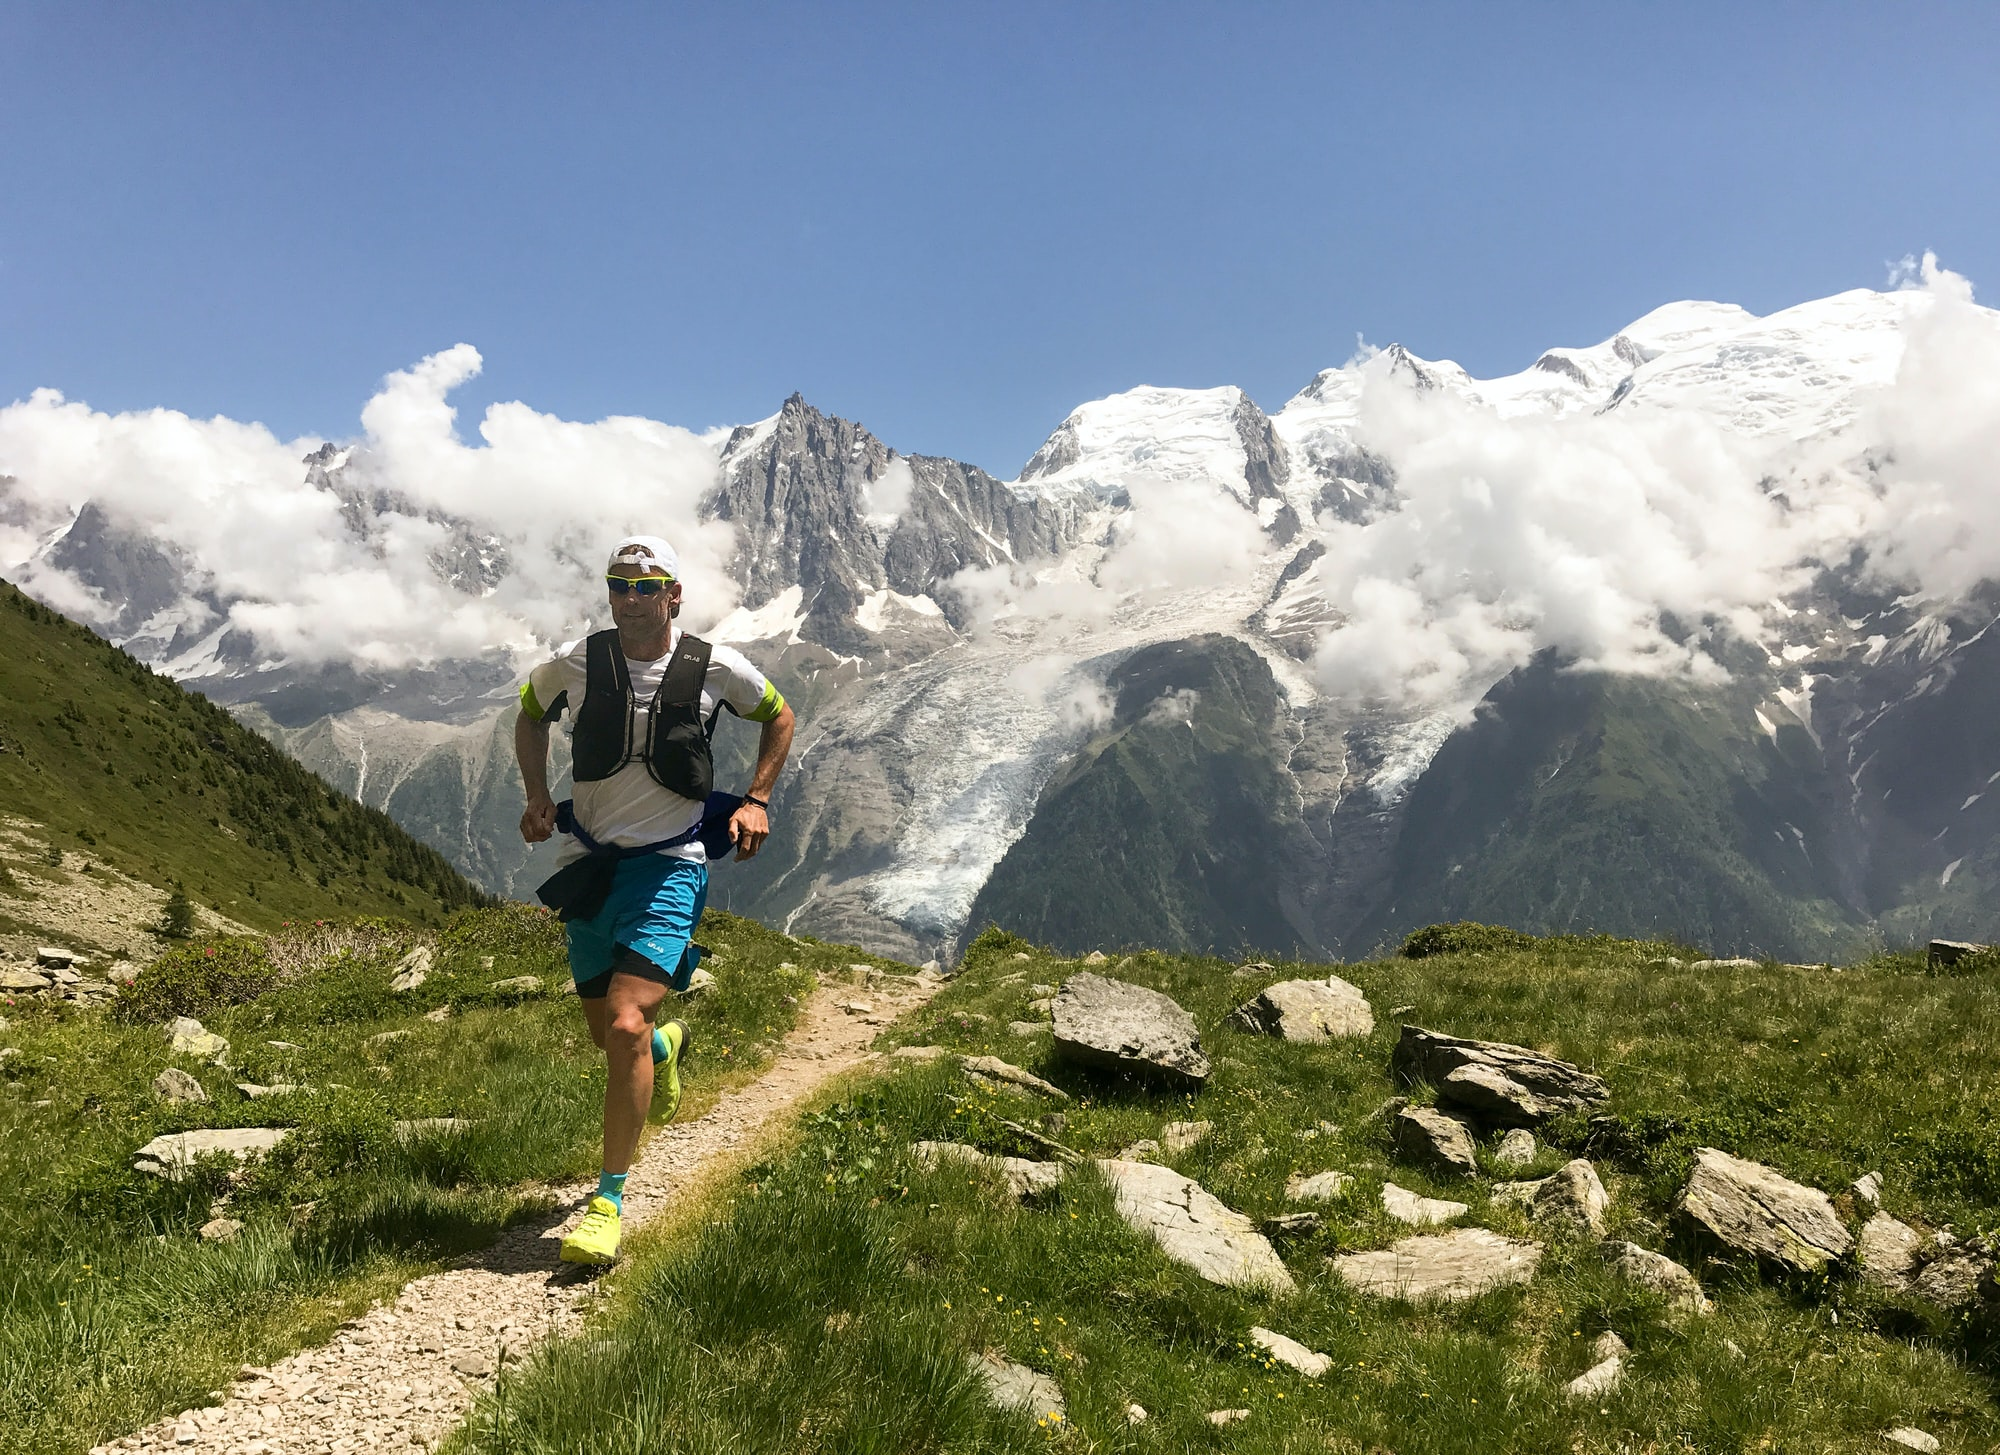 A runner runs on a high-altitude route in Chamonix, France.